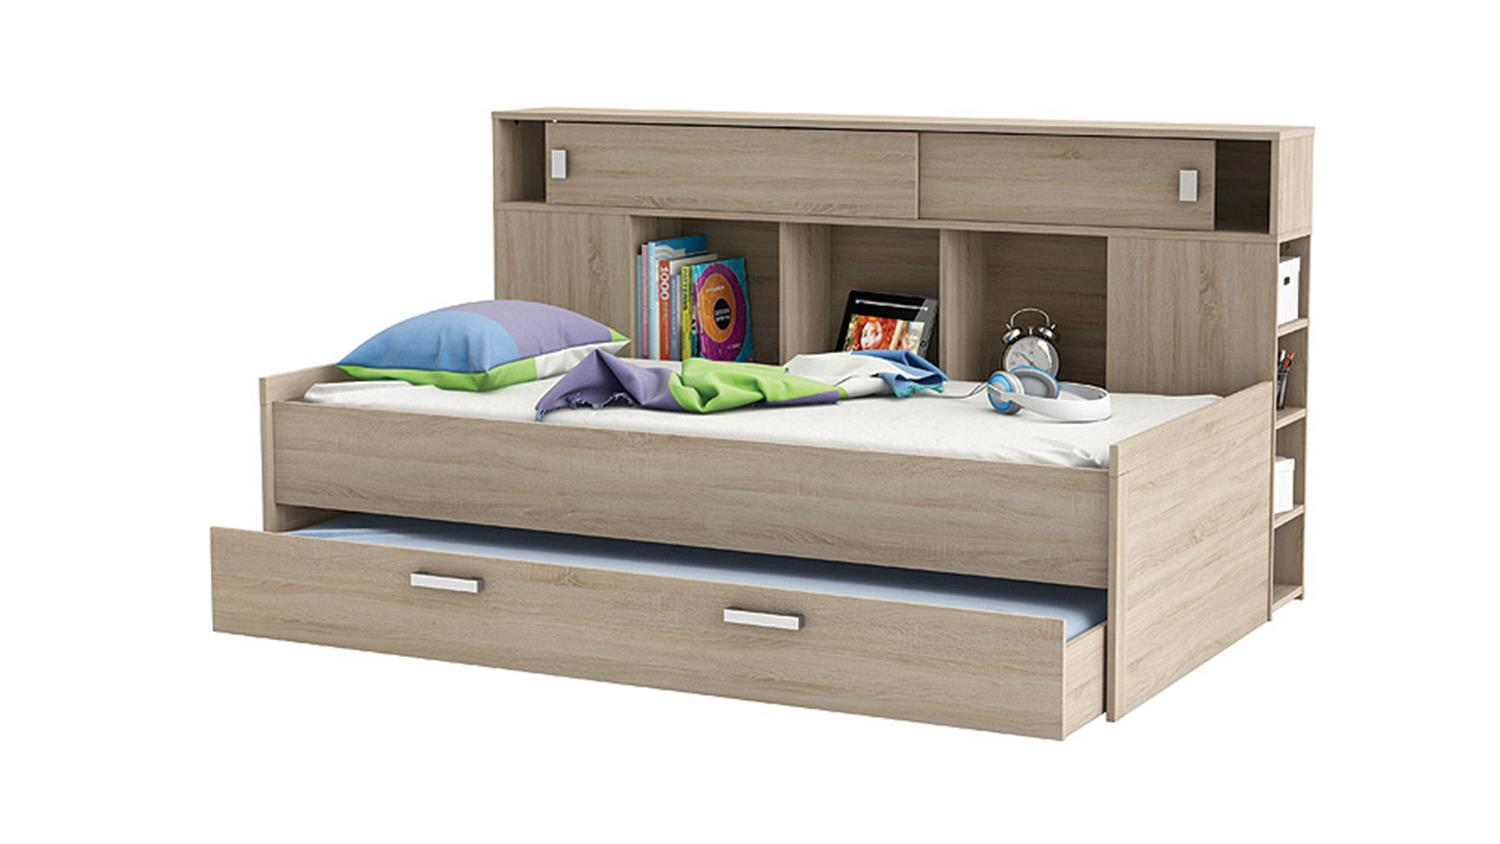 kinderbett mit bettkasten renato die neuesten innenarchitekturideen. Black Bedroom Furniture Sets. Home Design Ideas